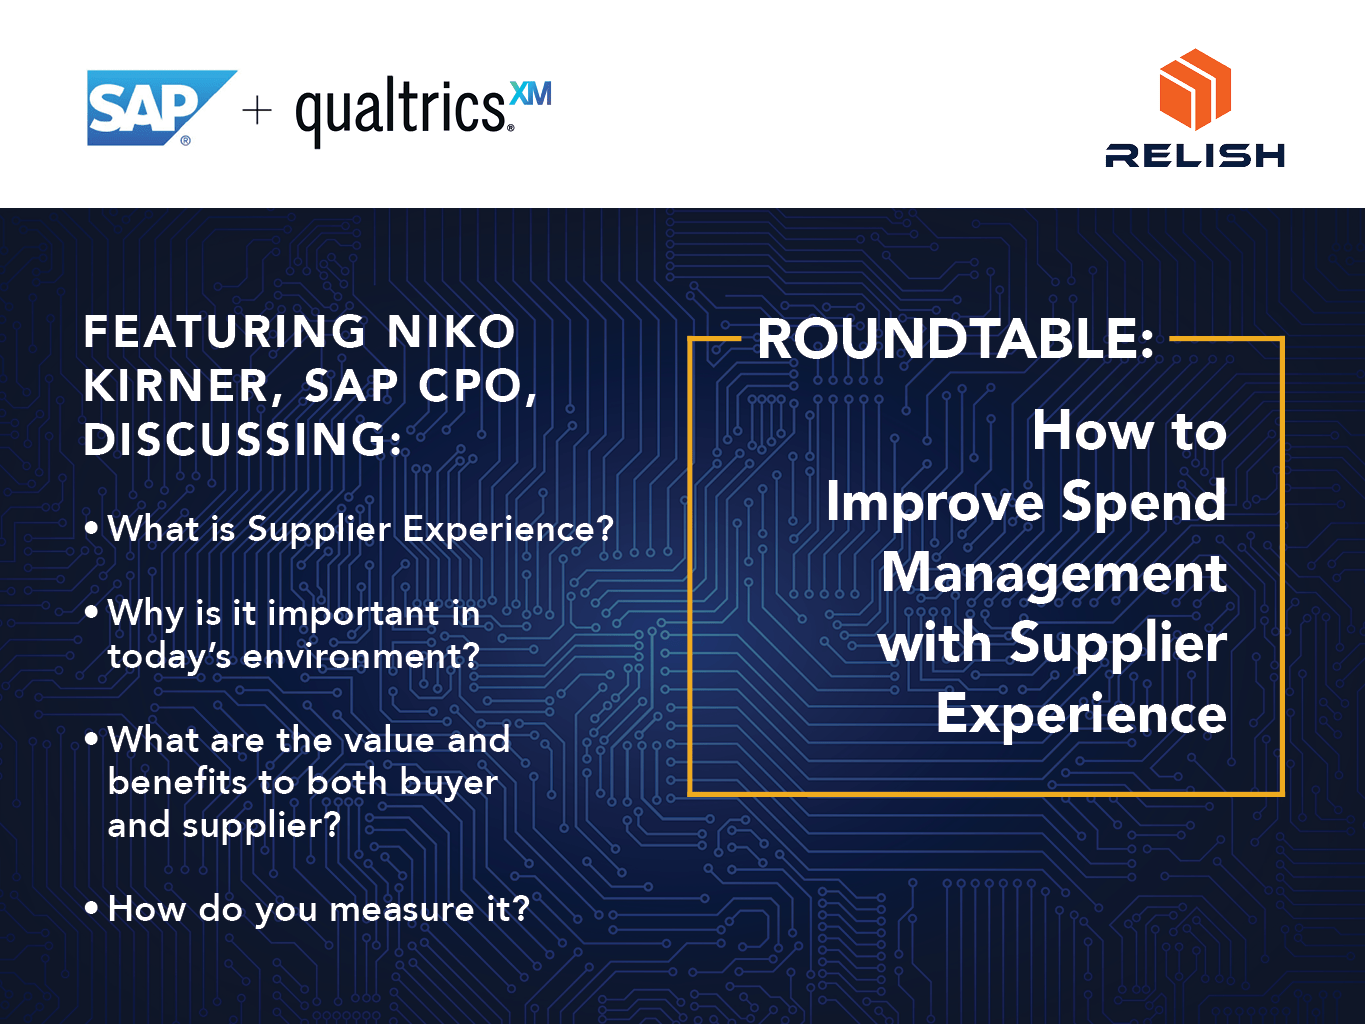 Improve Spend Management with Supplier Experience